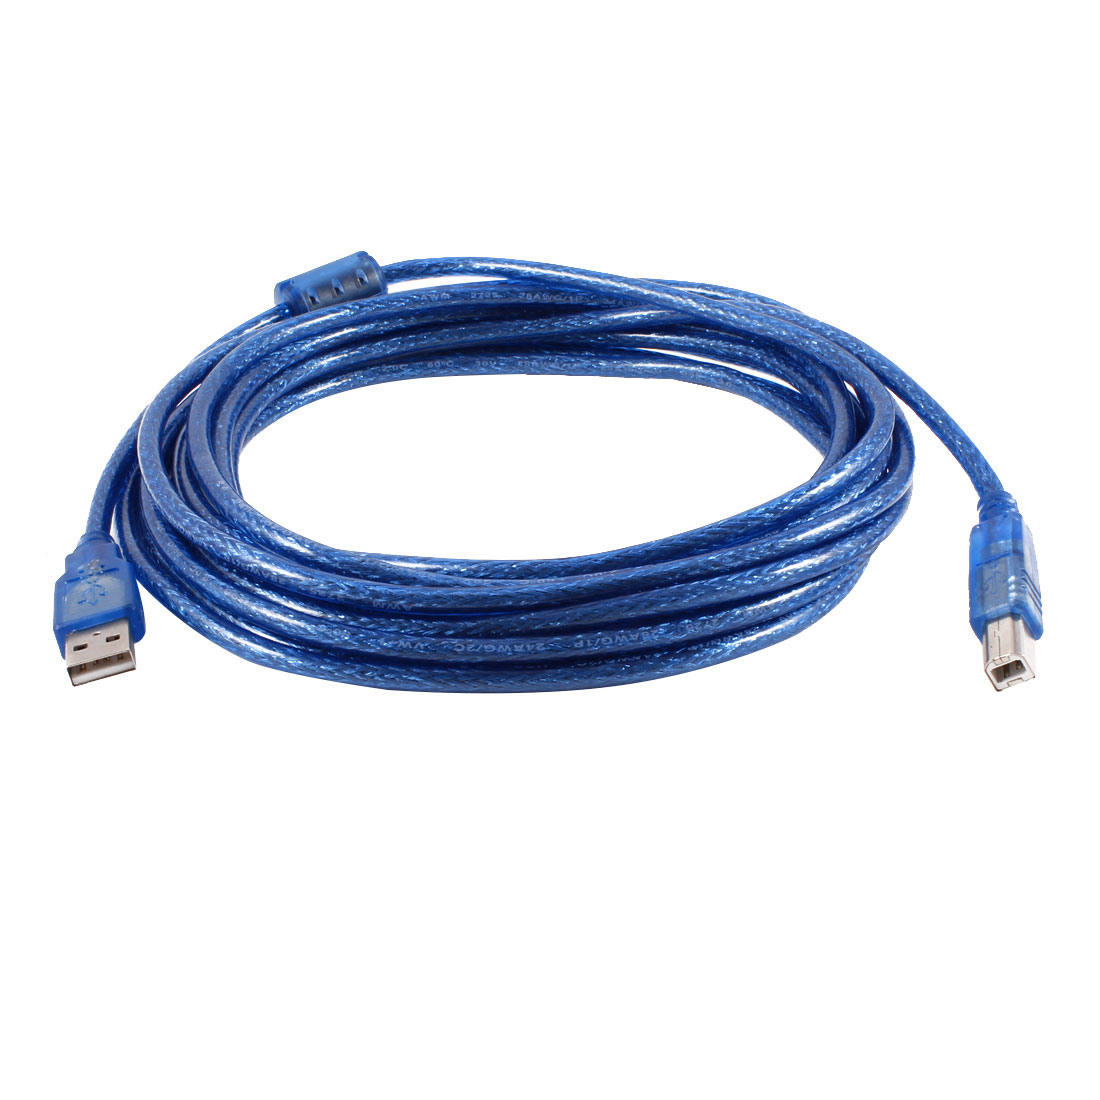 Clear Blue USB 2.0 Type A to Type B M/M Connector Printer Cable 5M 16.4ft Length